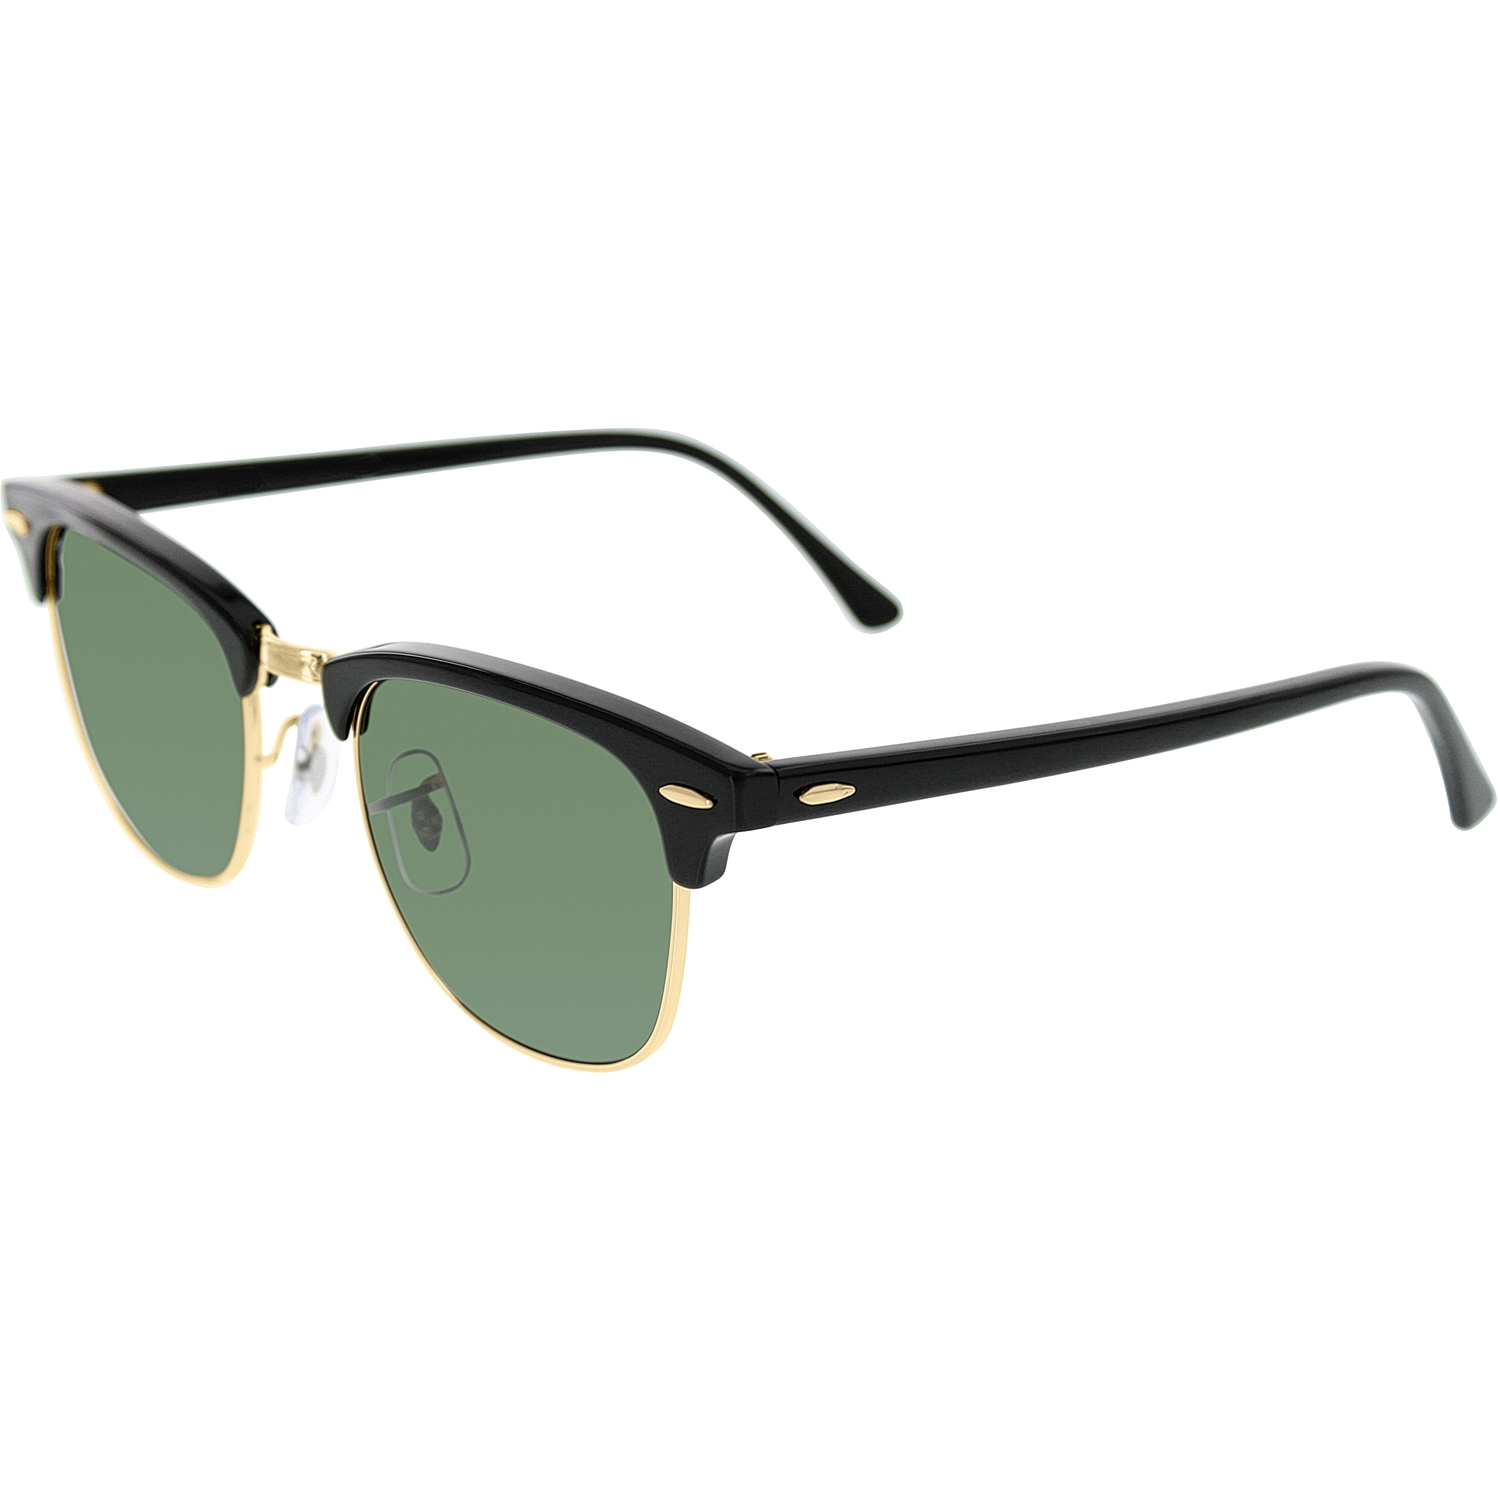 ray ban clubmaster rb3016 w0365 49 sunglasses  ray ban men's clubmaster rb3016 w0365 49 black semi rimless sunglasses